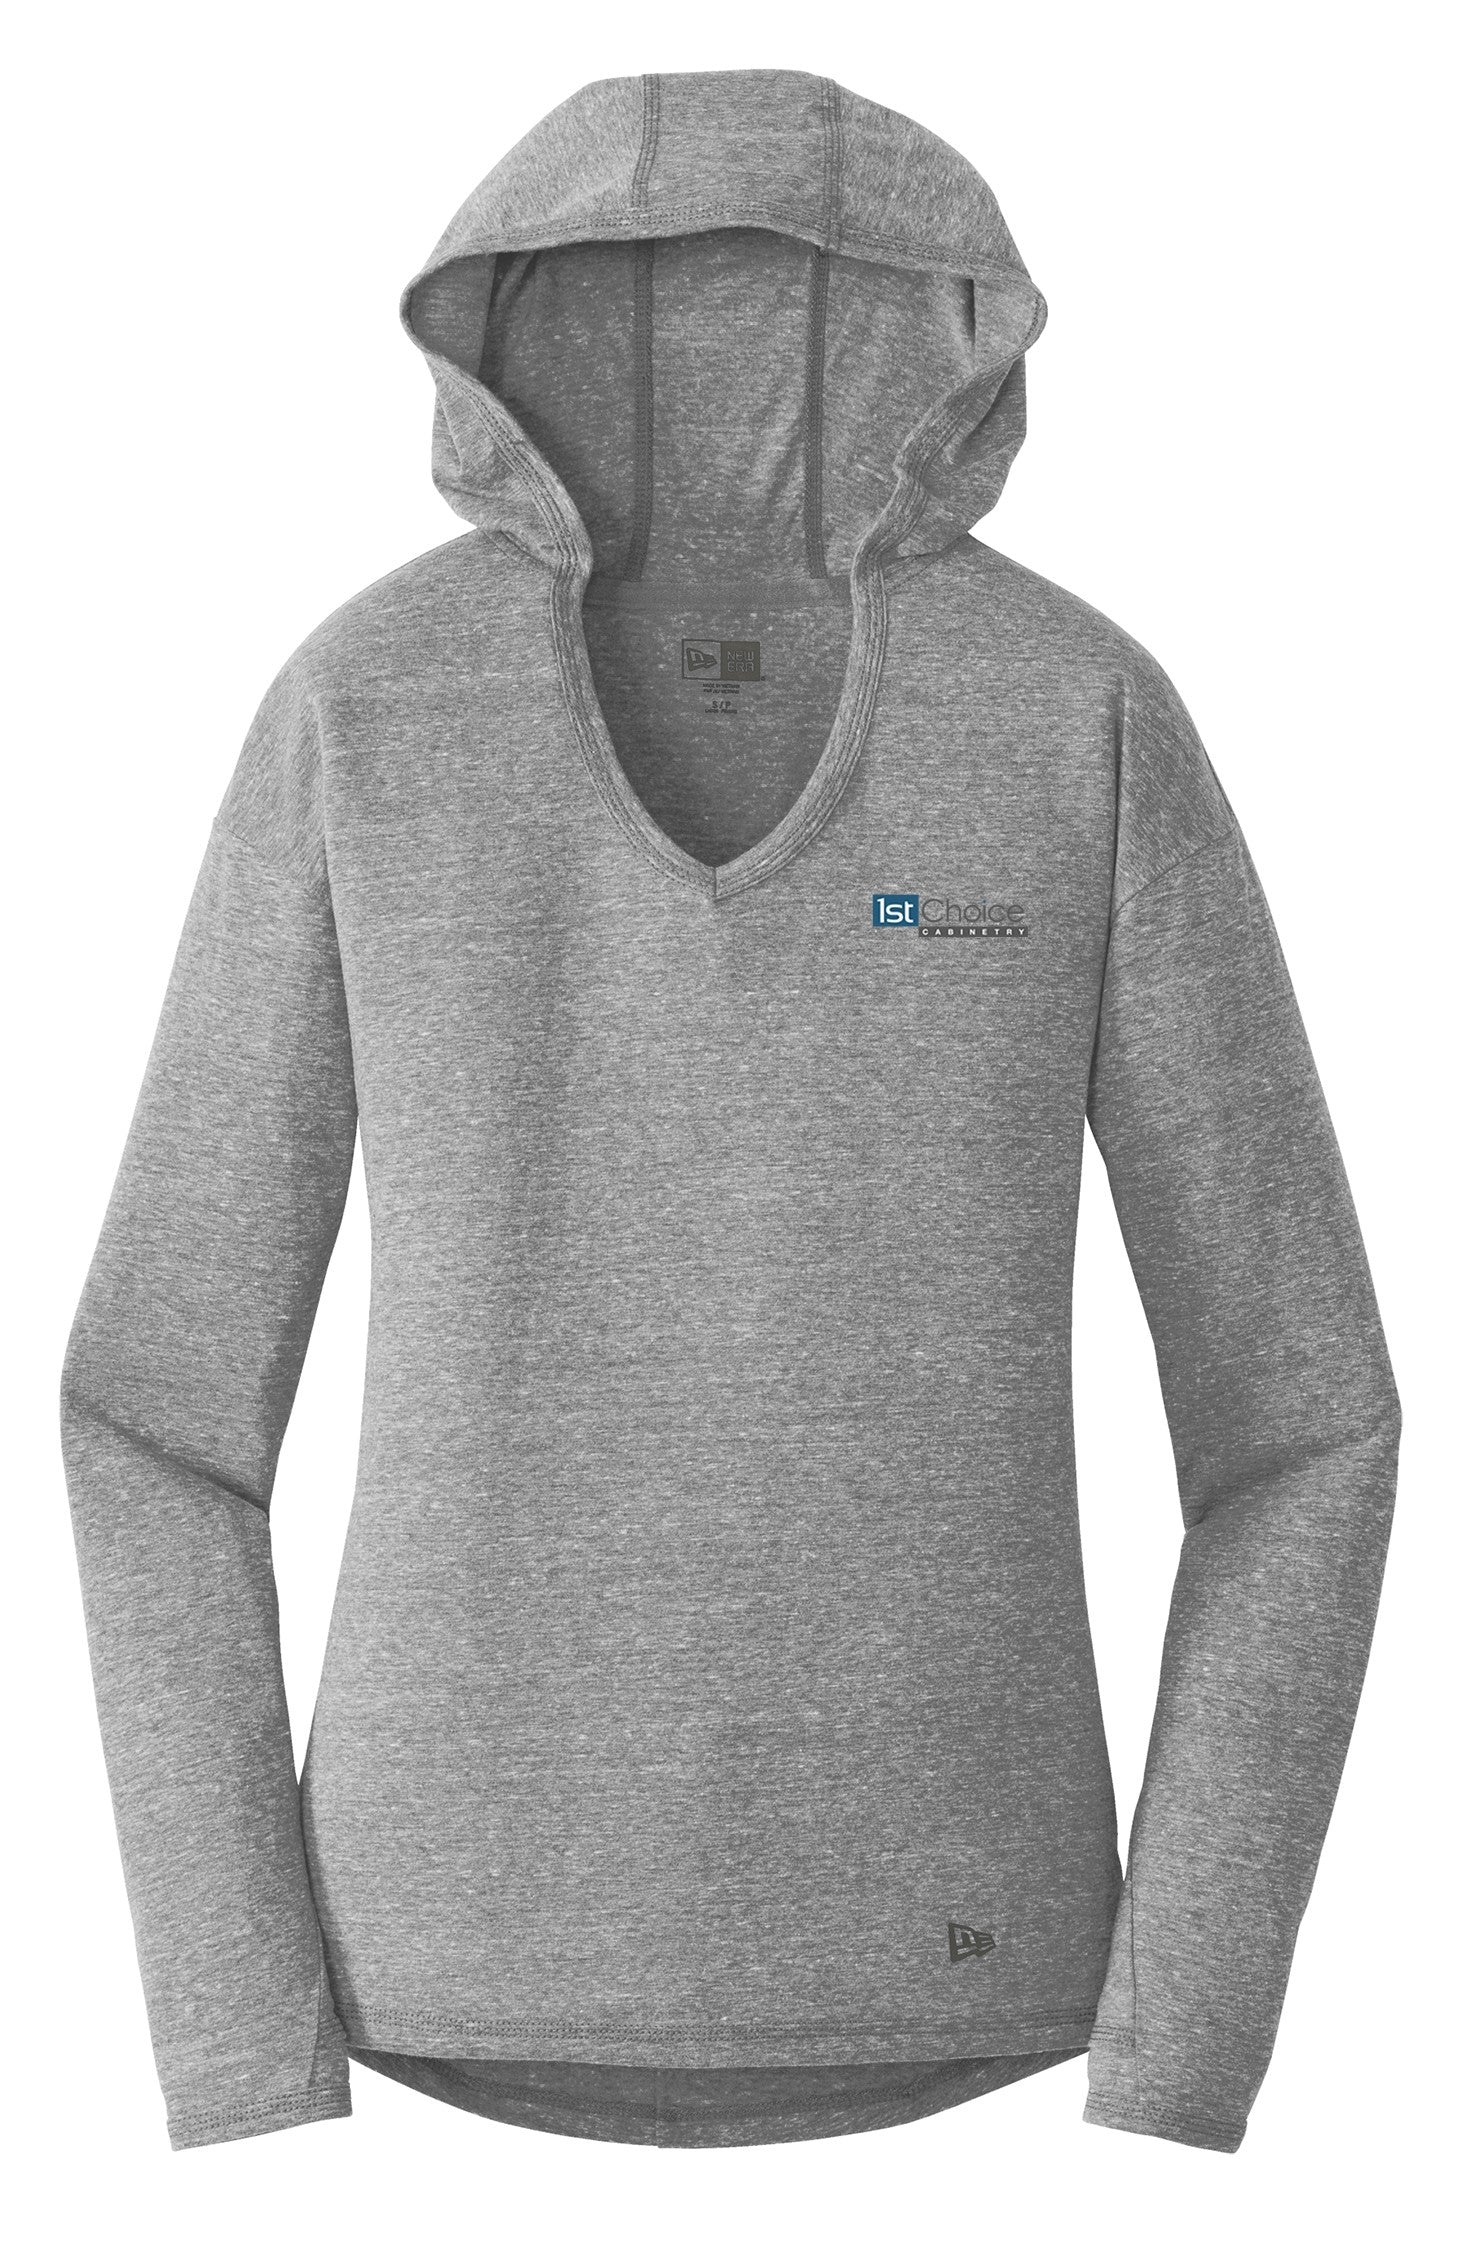 Ladies New Era Tri Blend Performance Pullover Hoodie T-Shirt